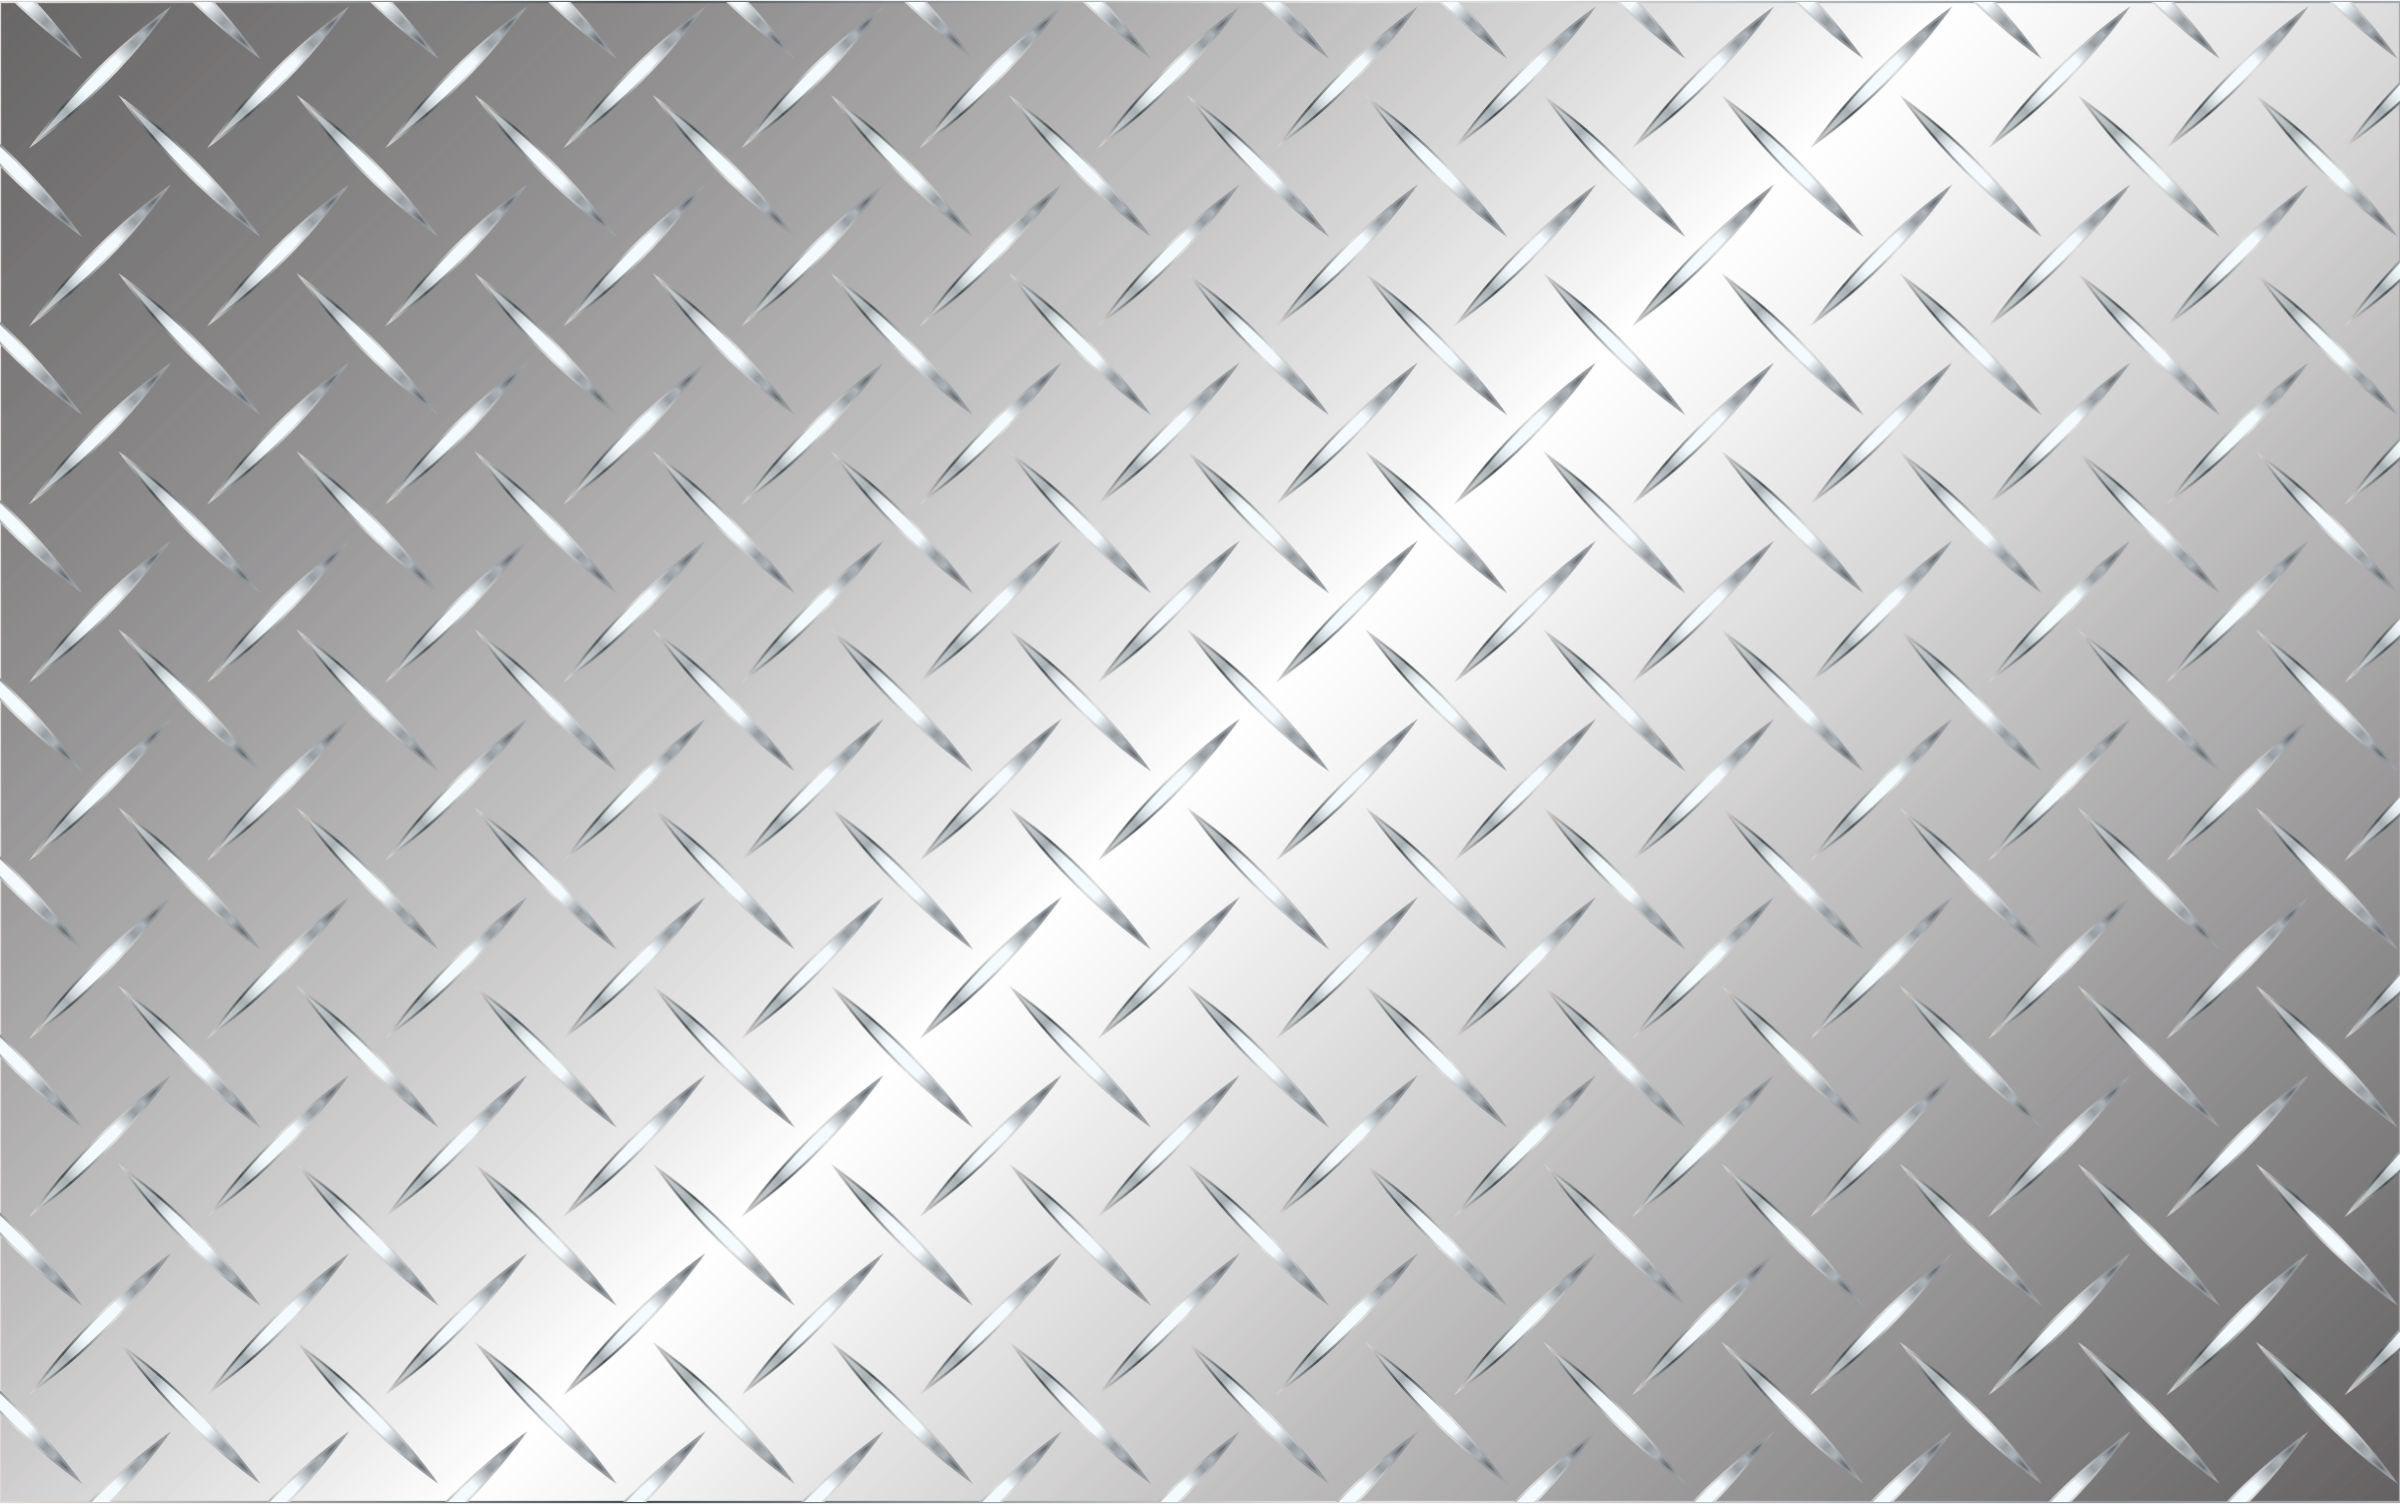 Diamond Plate Flooring Tiles Images Diamond Plate Vinyl